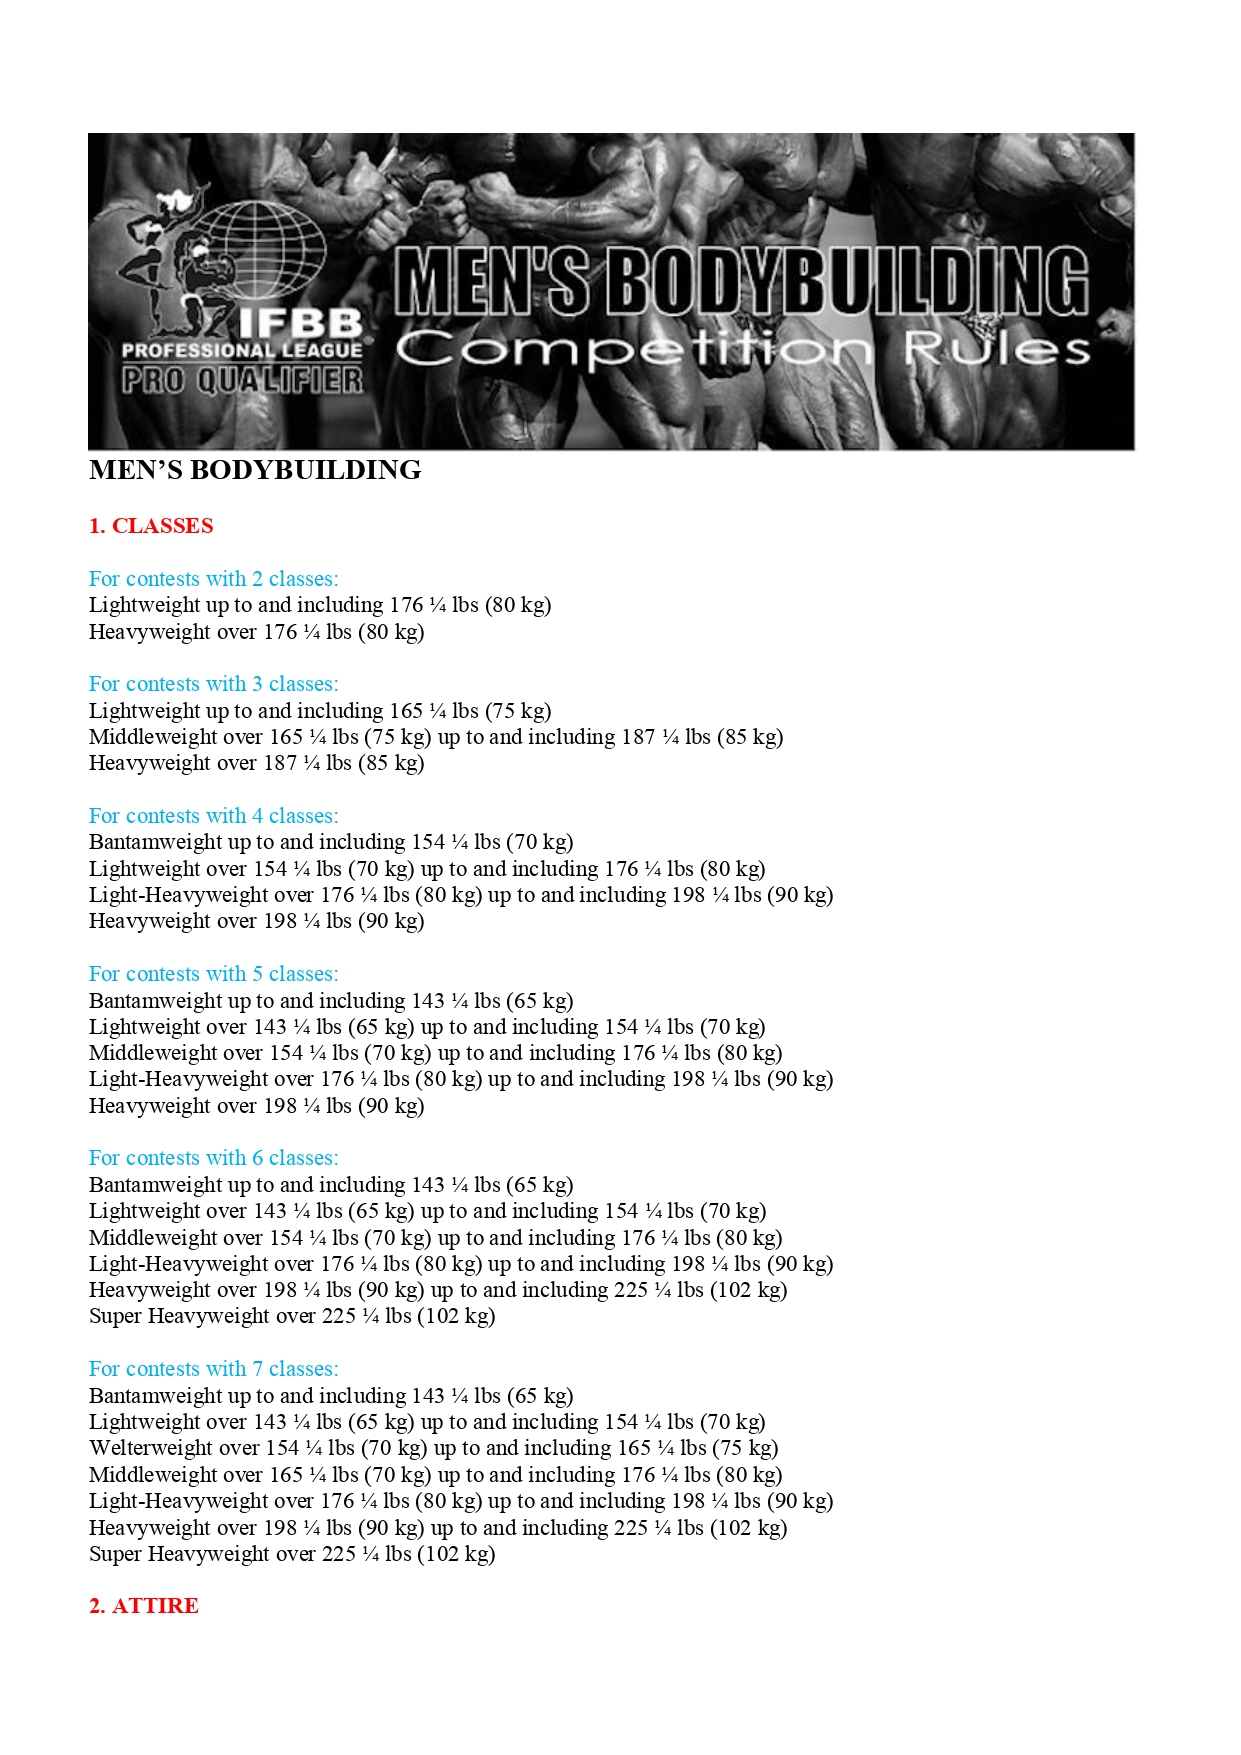 IFBB-rules_page-0007